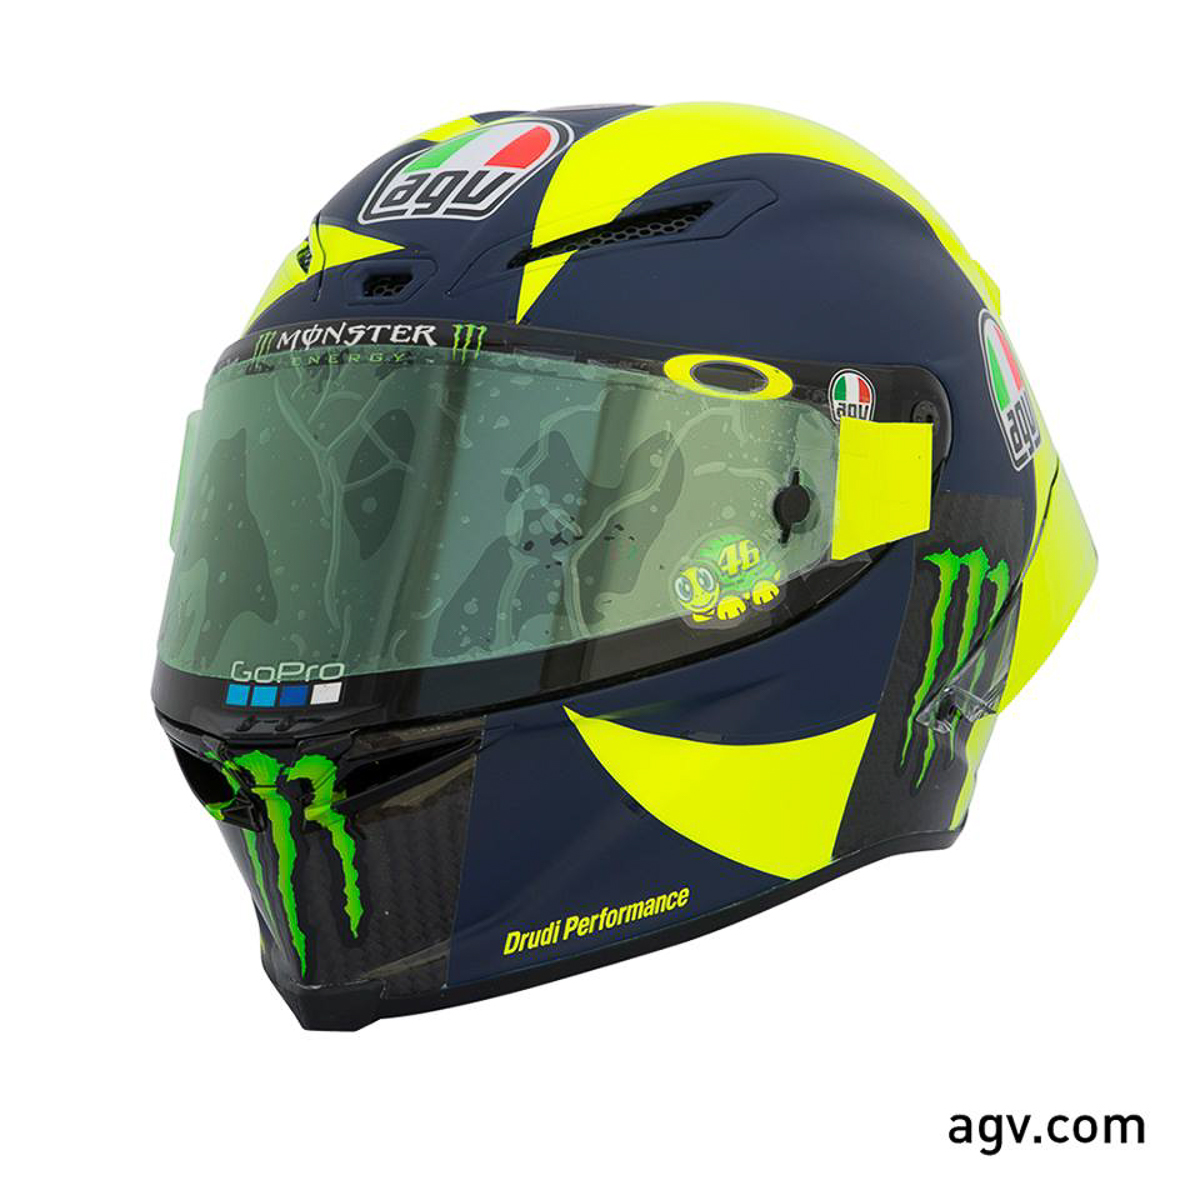 rossi goes old school with 2018 agv pista gp r bikesrepublic. Black Bedroom Furniture Sets. Home Design Ideas